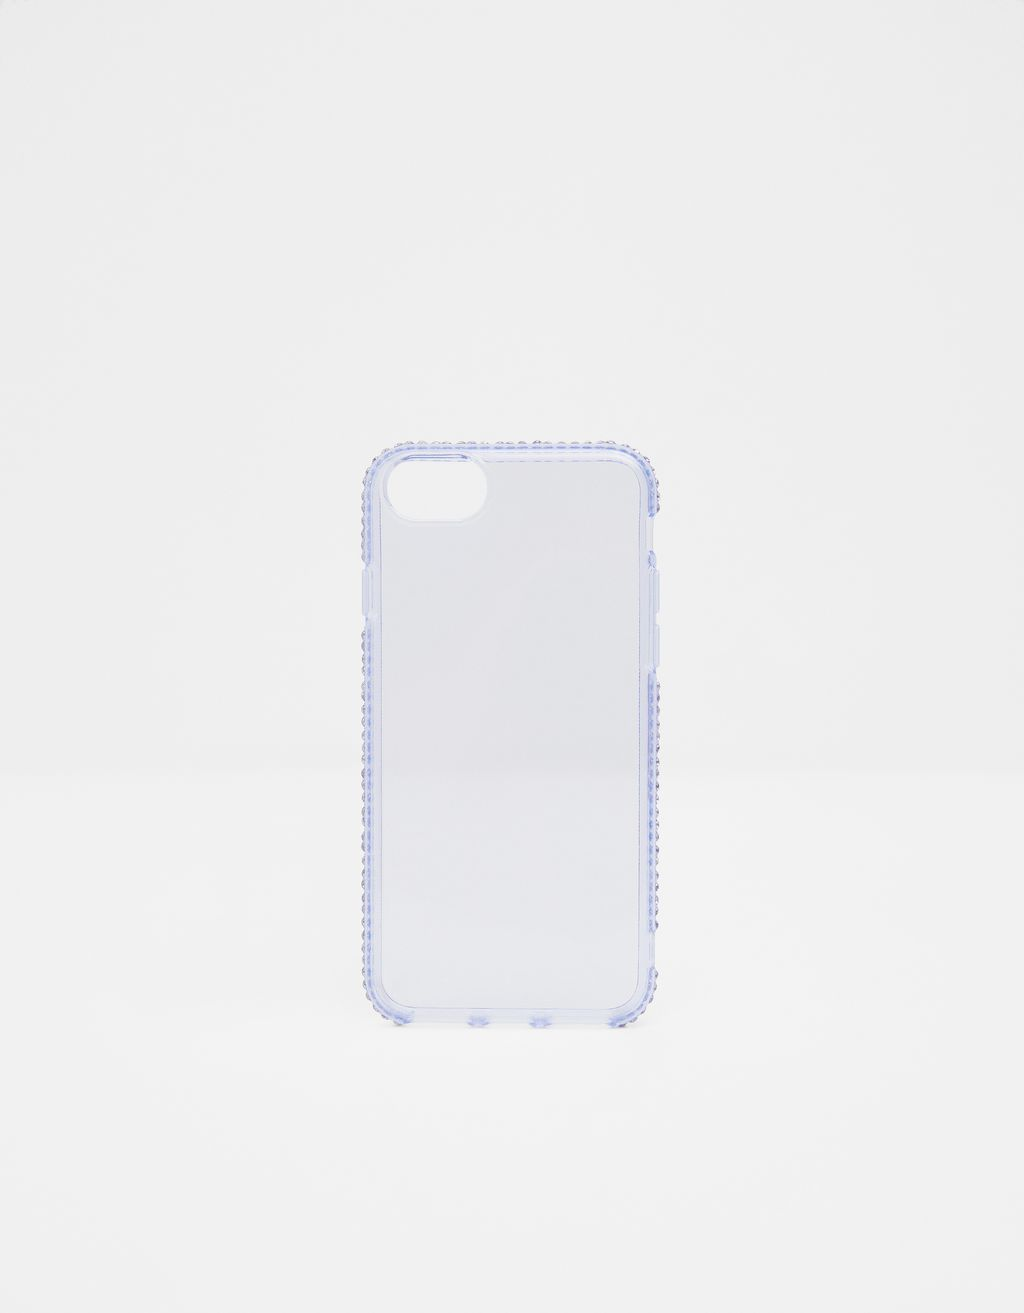 Rhinestone iPhone 6 / 7 / 8 case